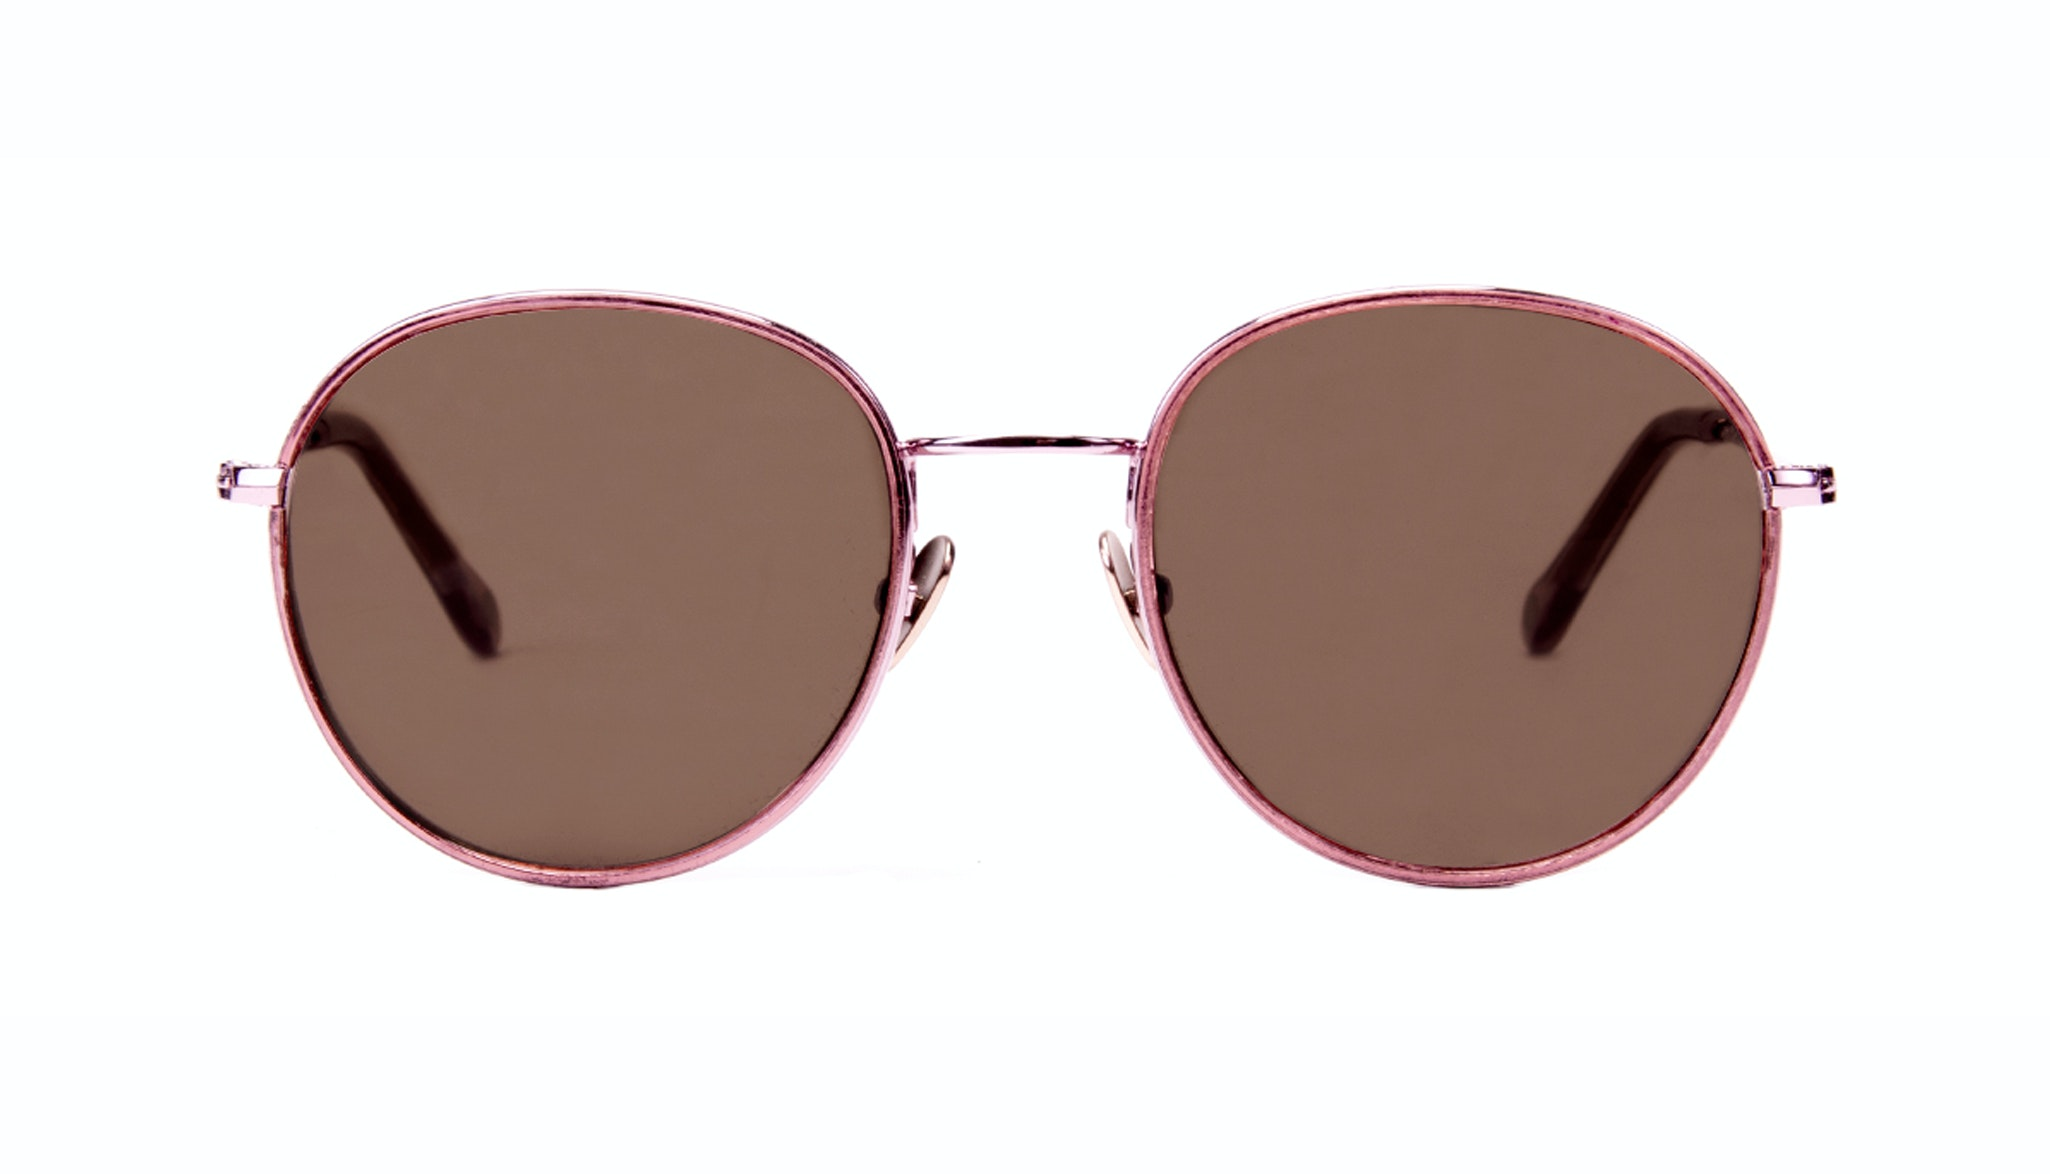 Affordable Fashion Glasses Aviator Round Sunglasses Women Subrosa Romance Front